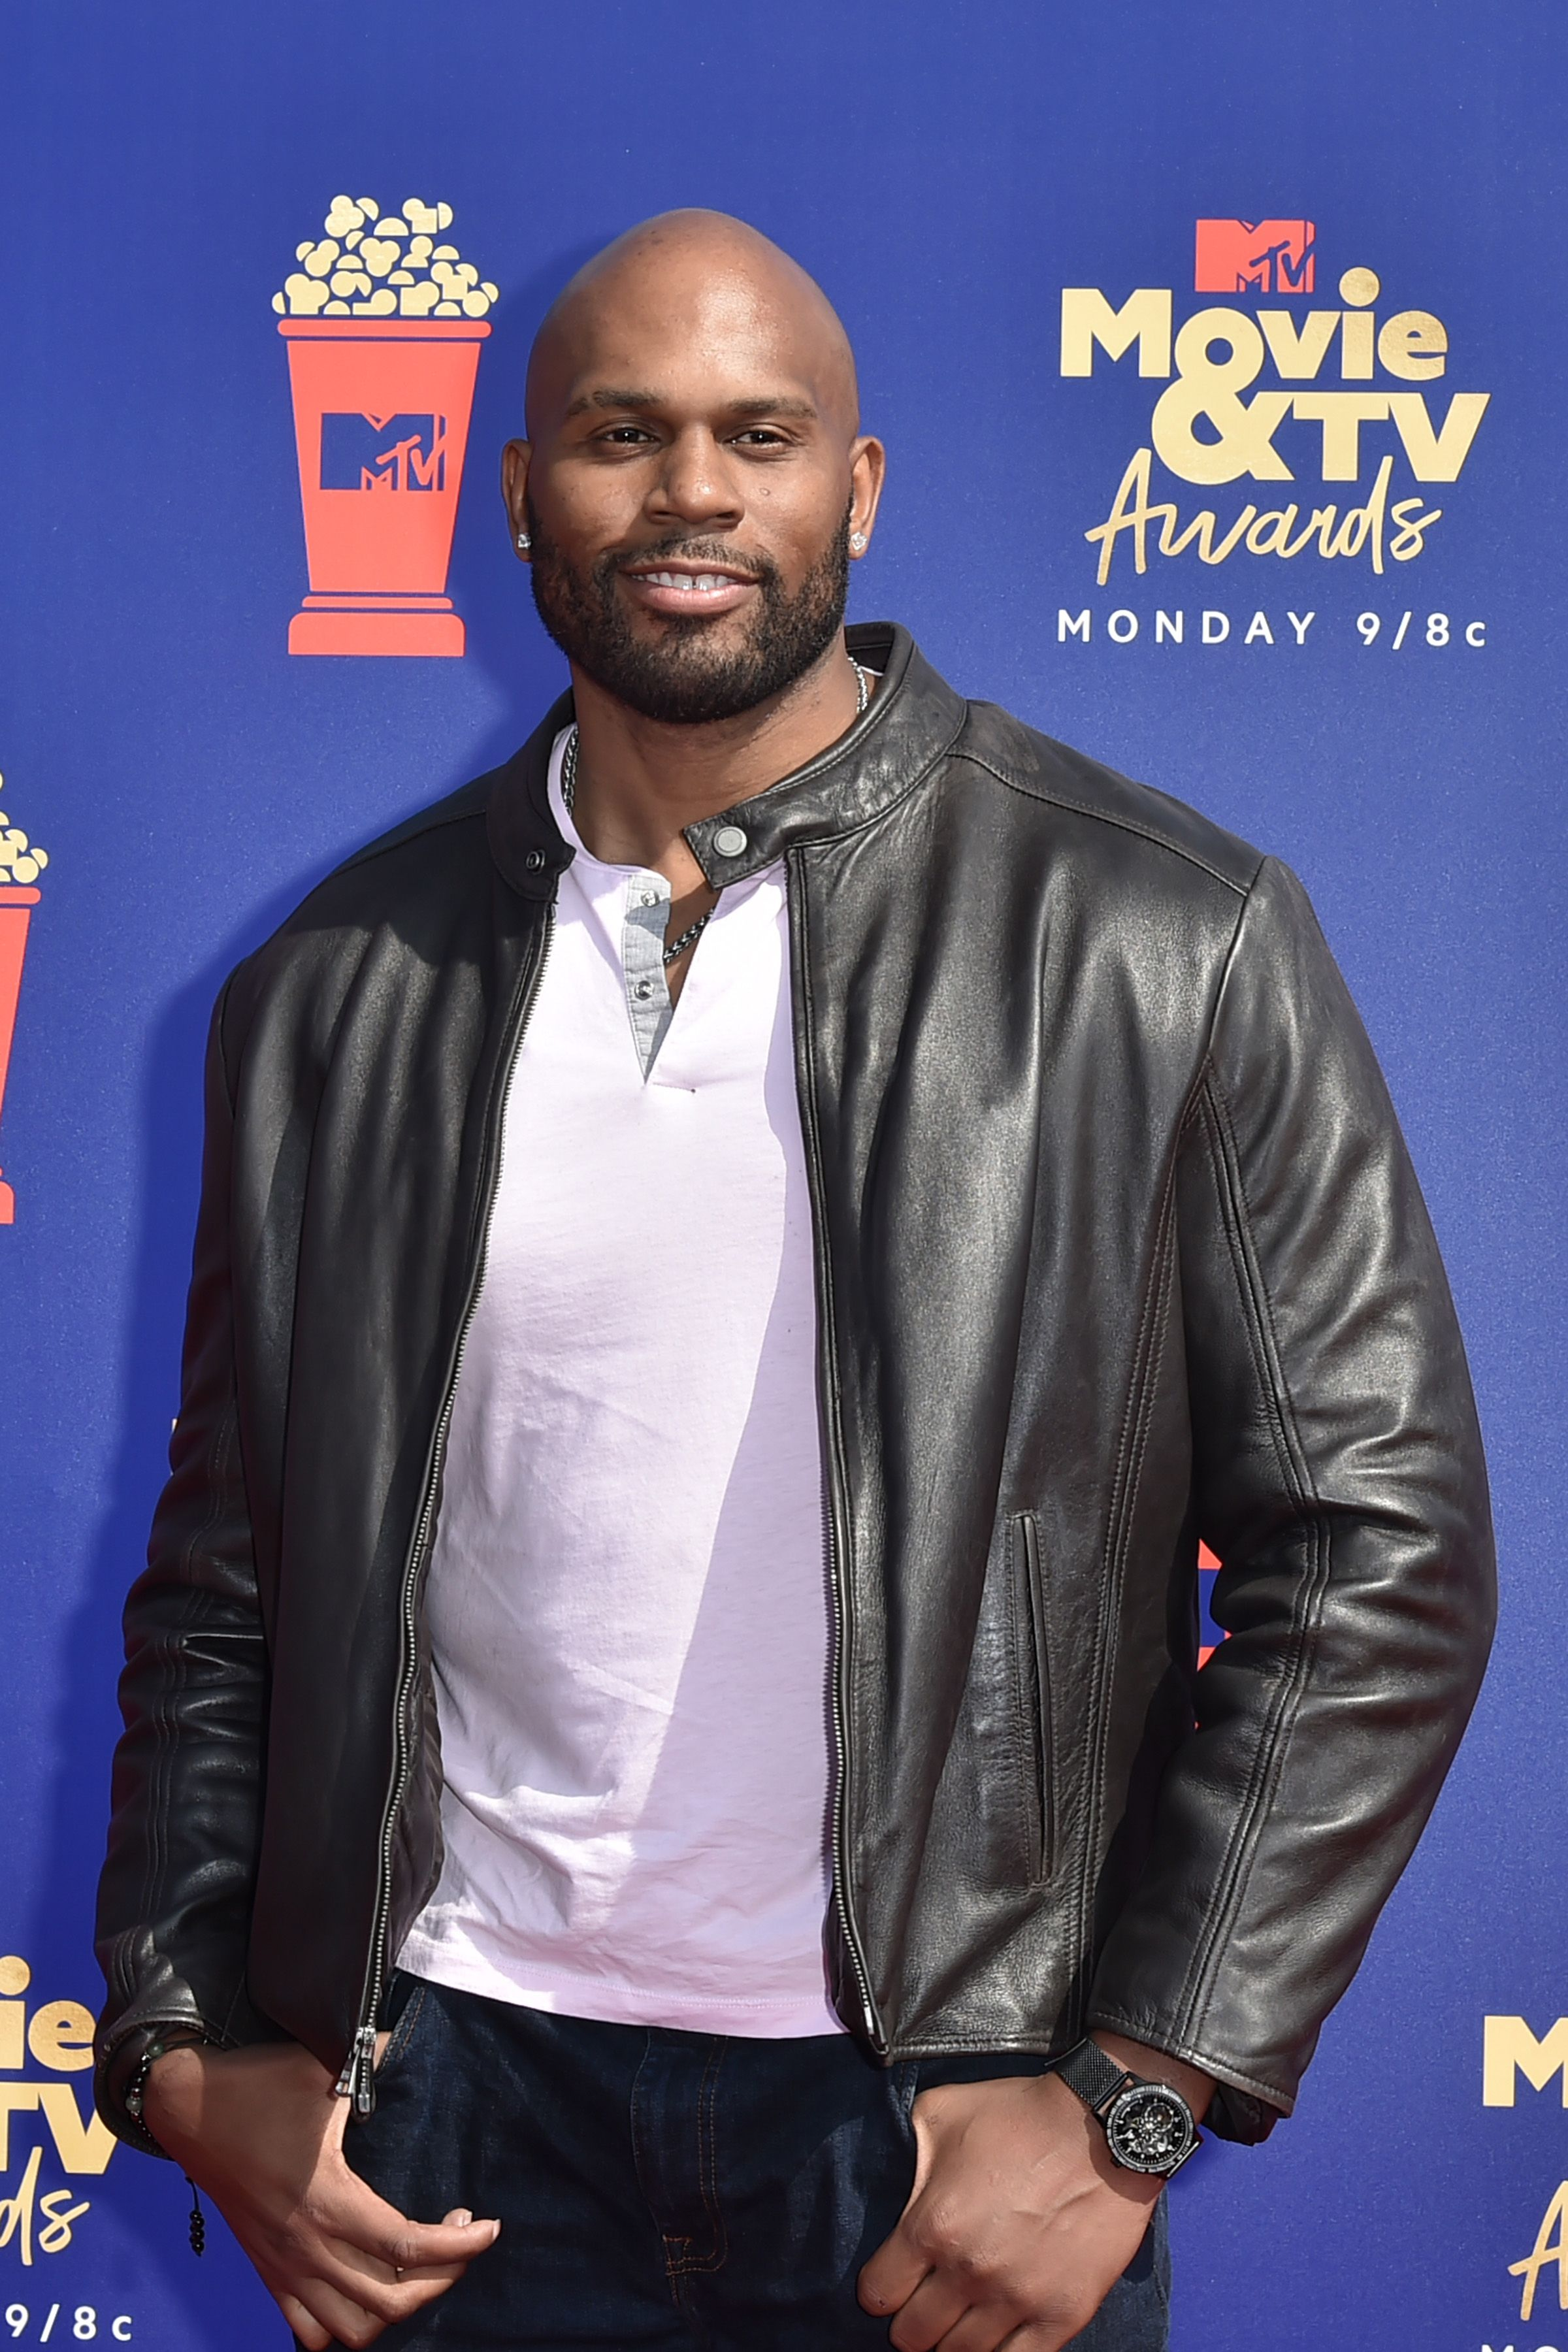 Shad Gaspard at the 2019 MTV Movie & TV Awards on June 15, 2019 in Santa Monica, California   Photo: Getty Images